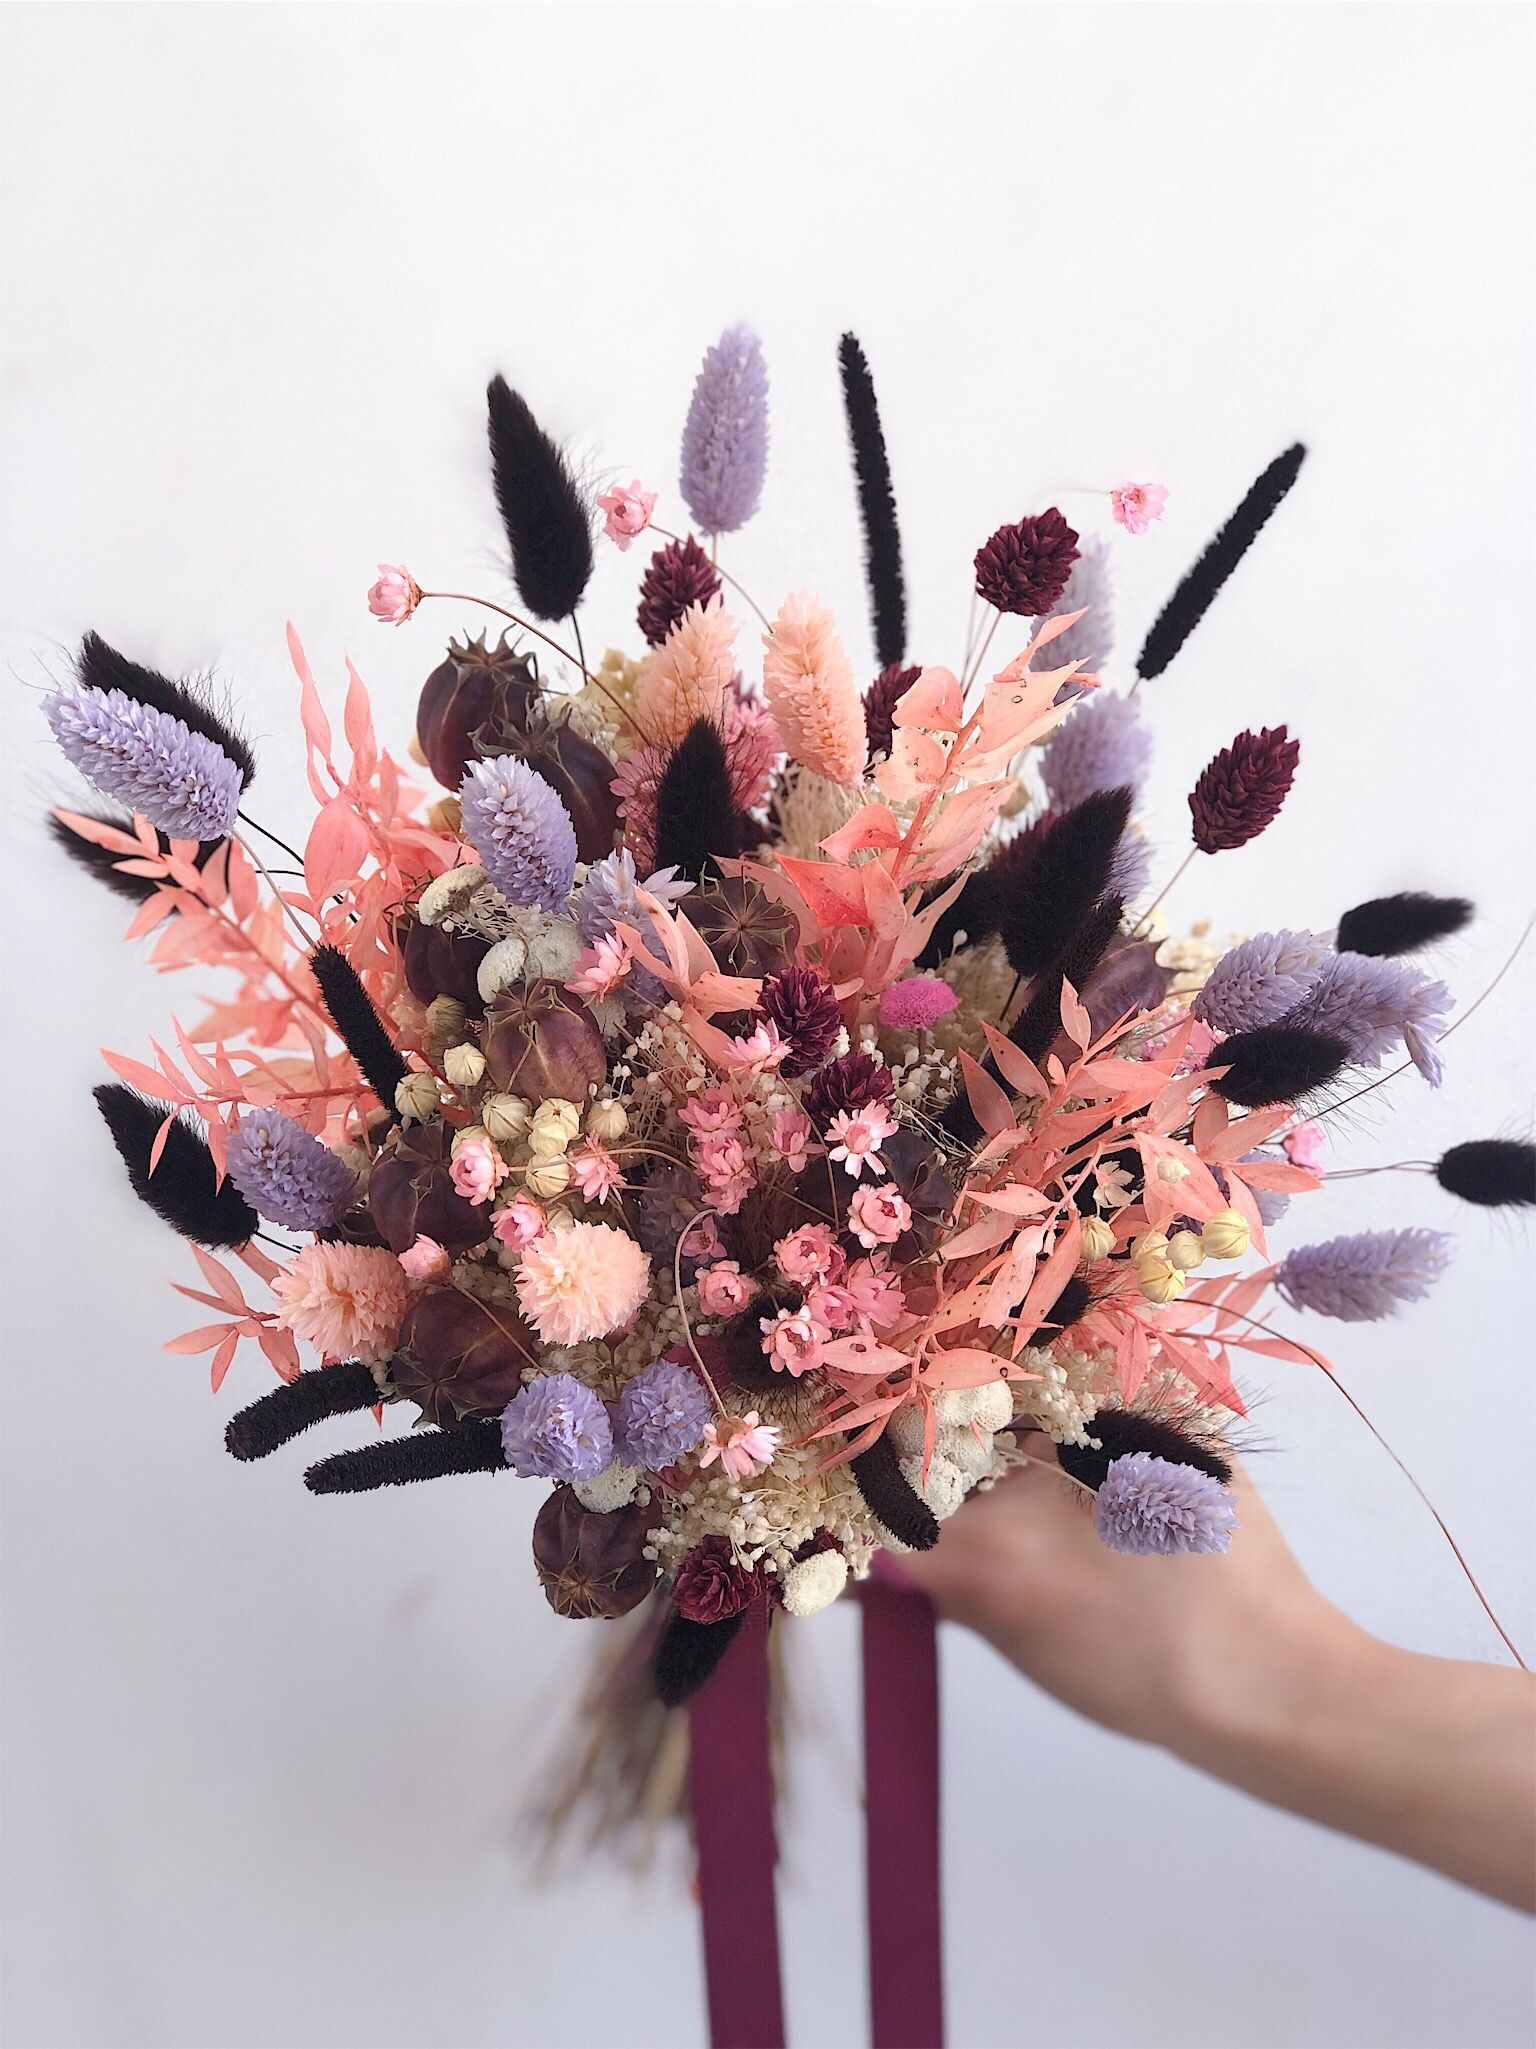 Pride For The Dried Flowers Dried Flower Bouquet Dried Flower Arrangements Dried Flowers